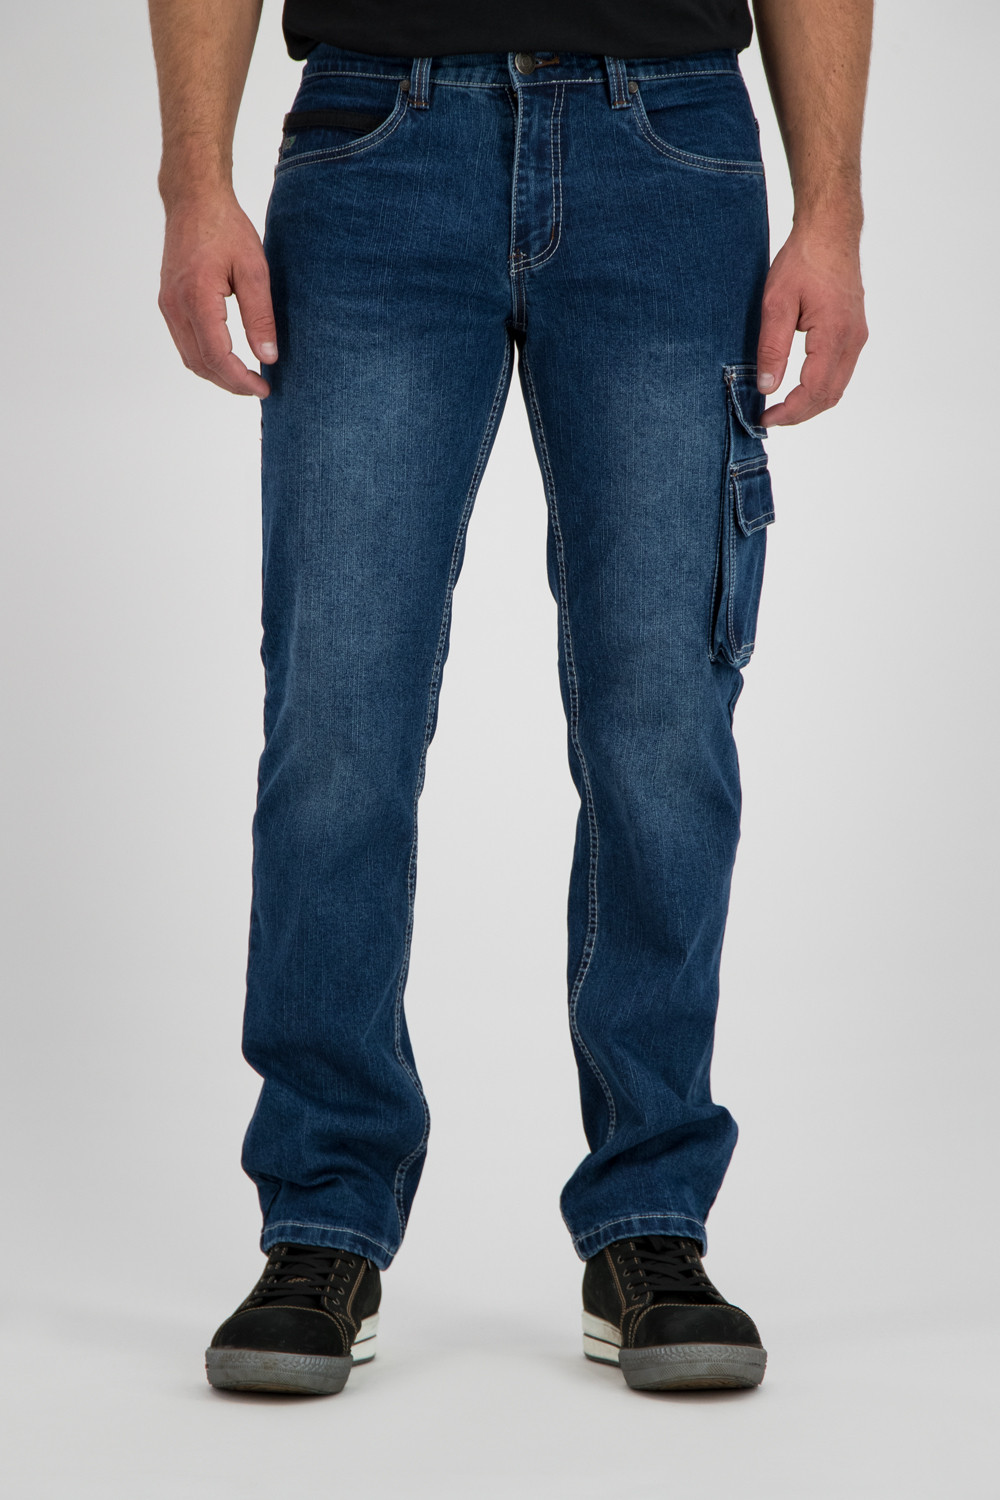 247 Jeans Rhino S20 Medium blue